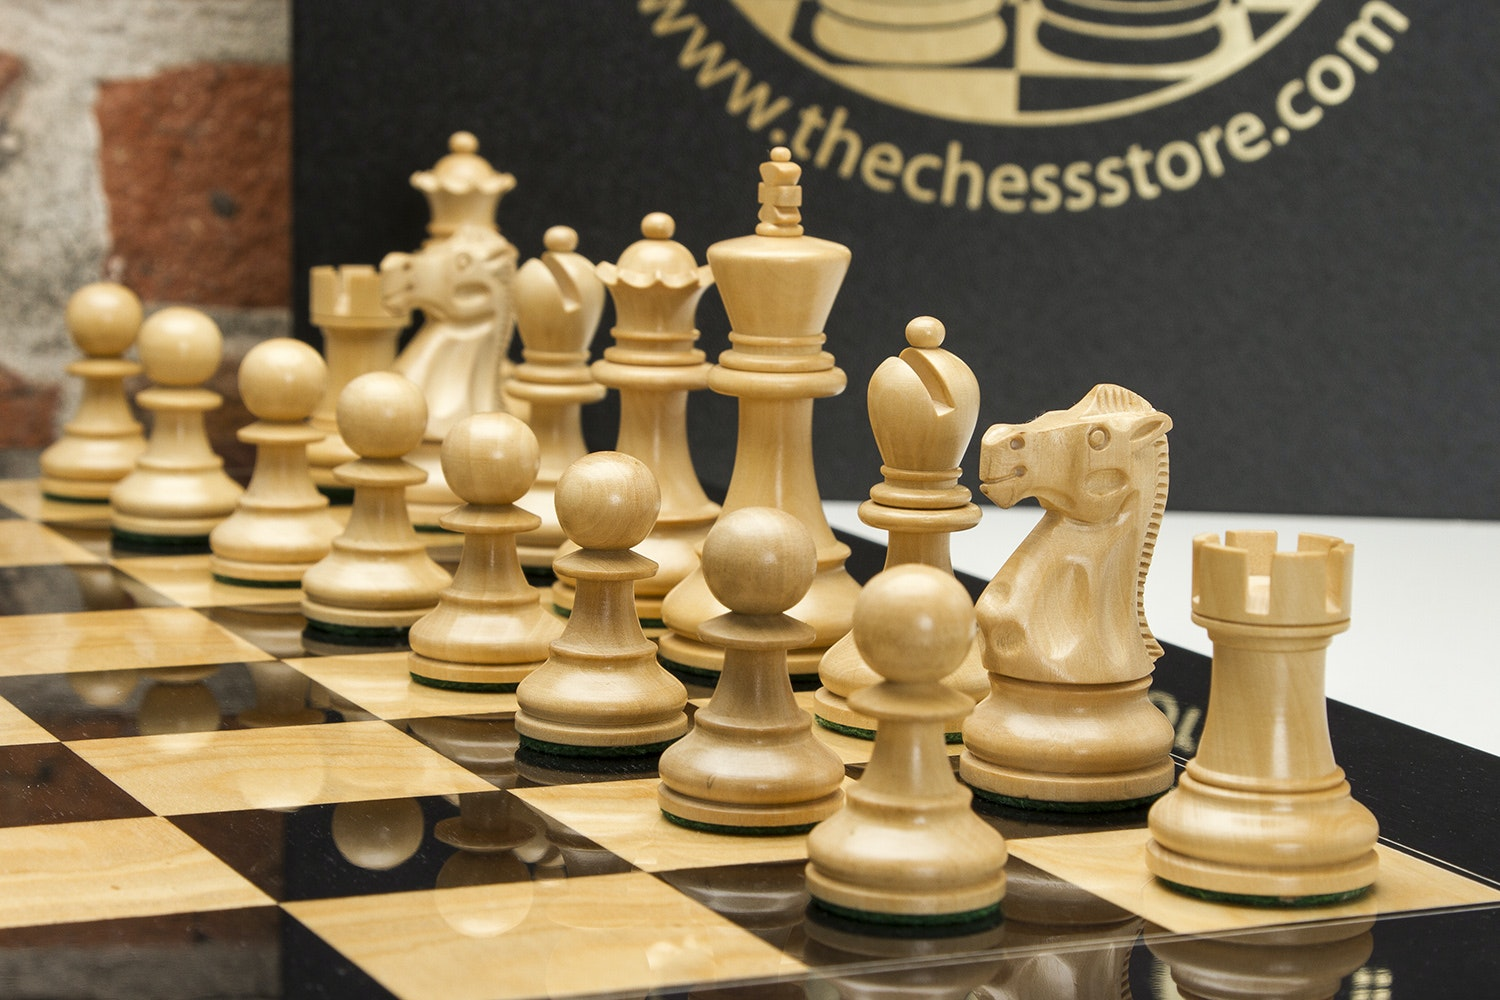 Deluxe Old Club Staunton Chess Set with Board